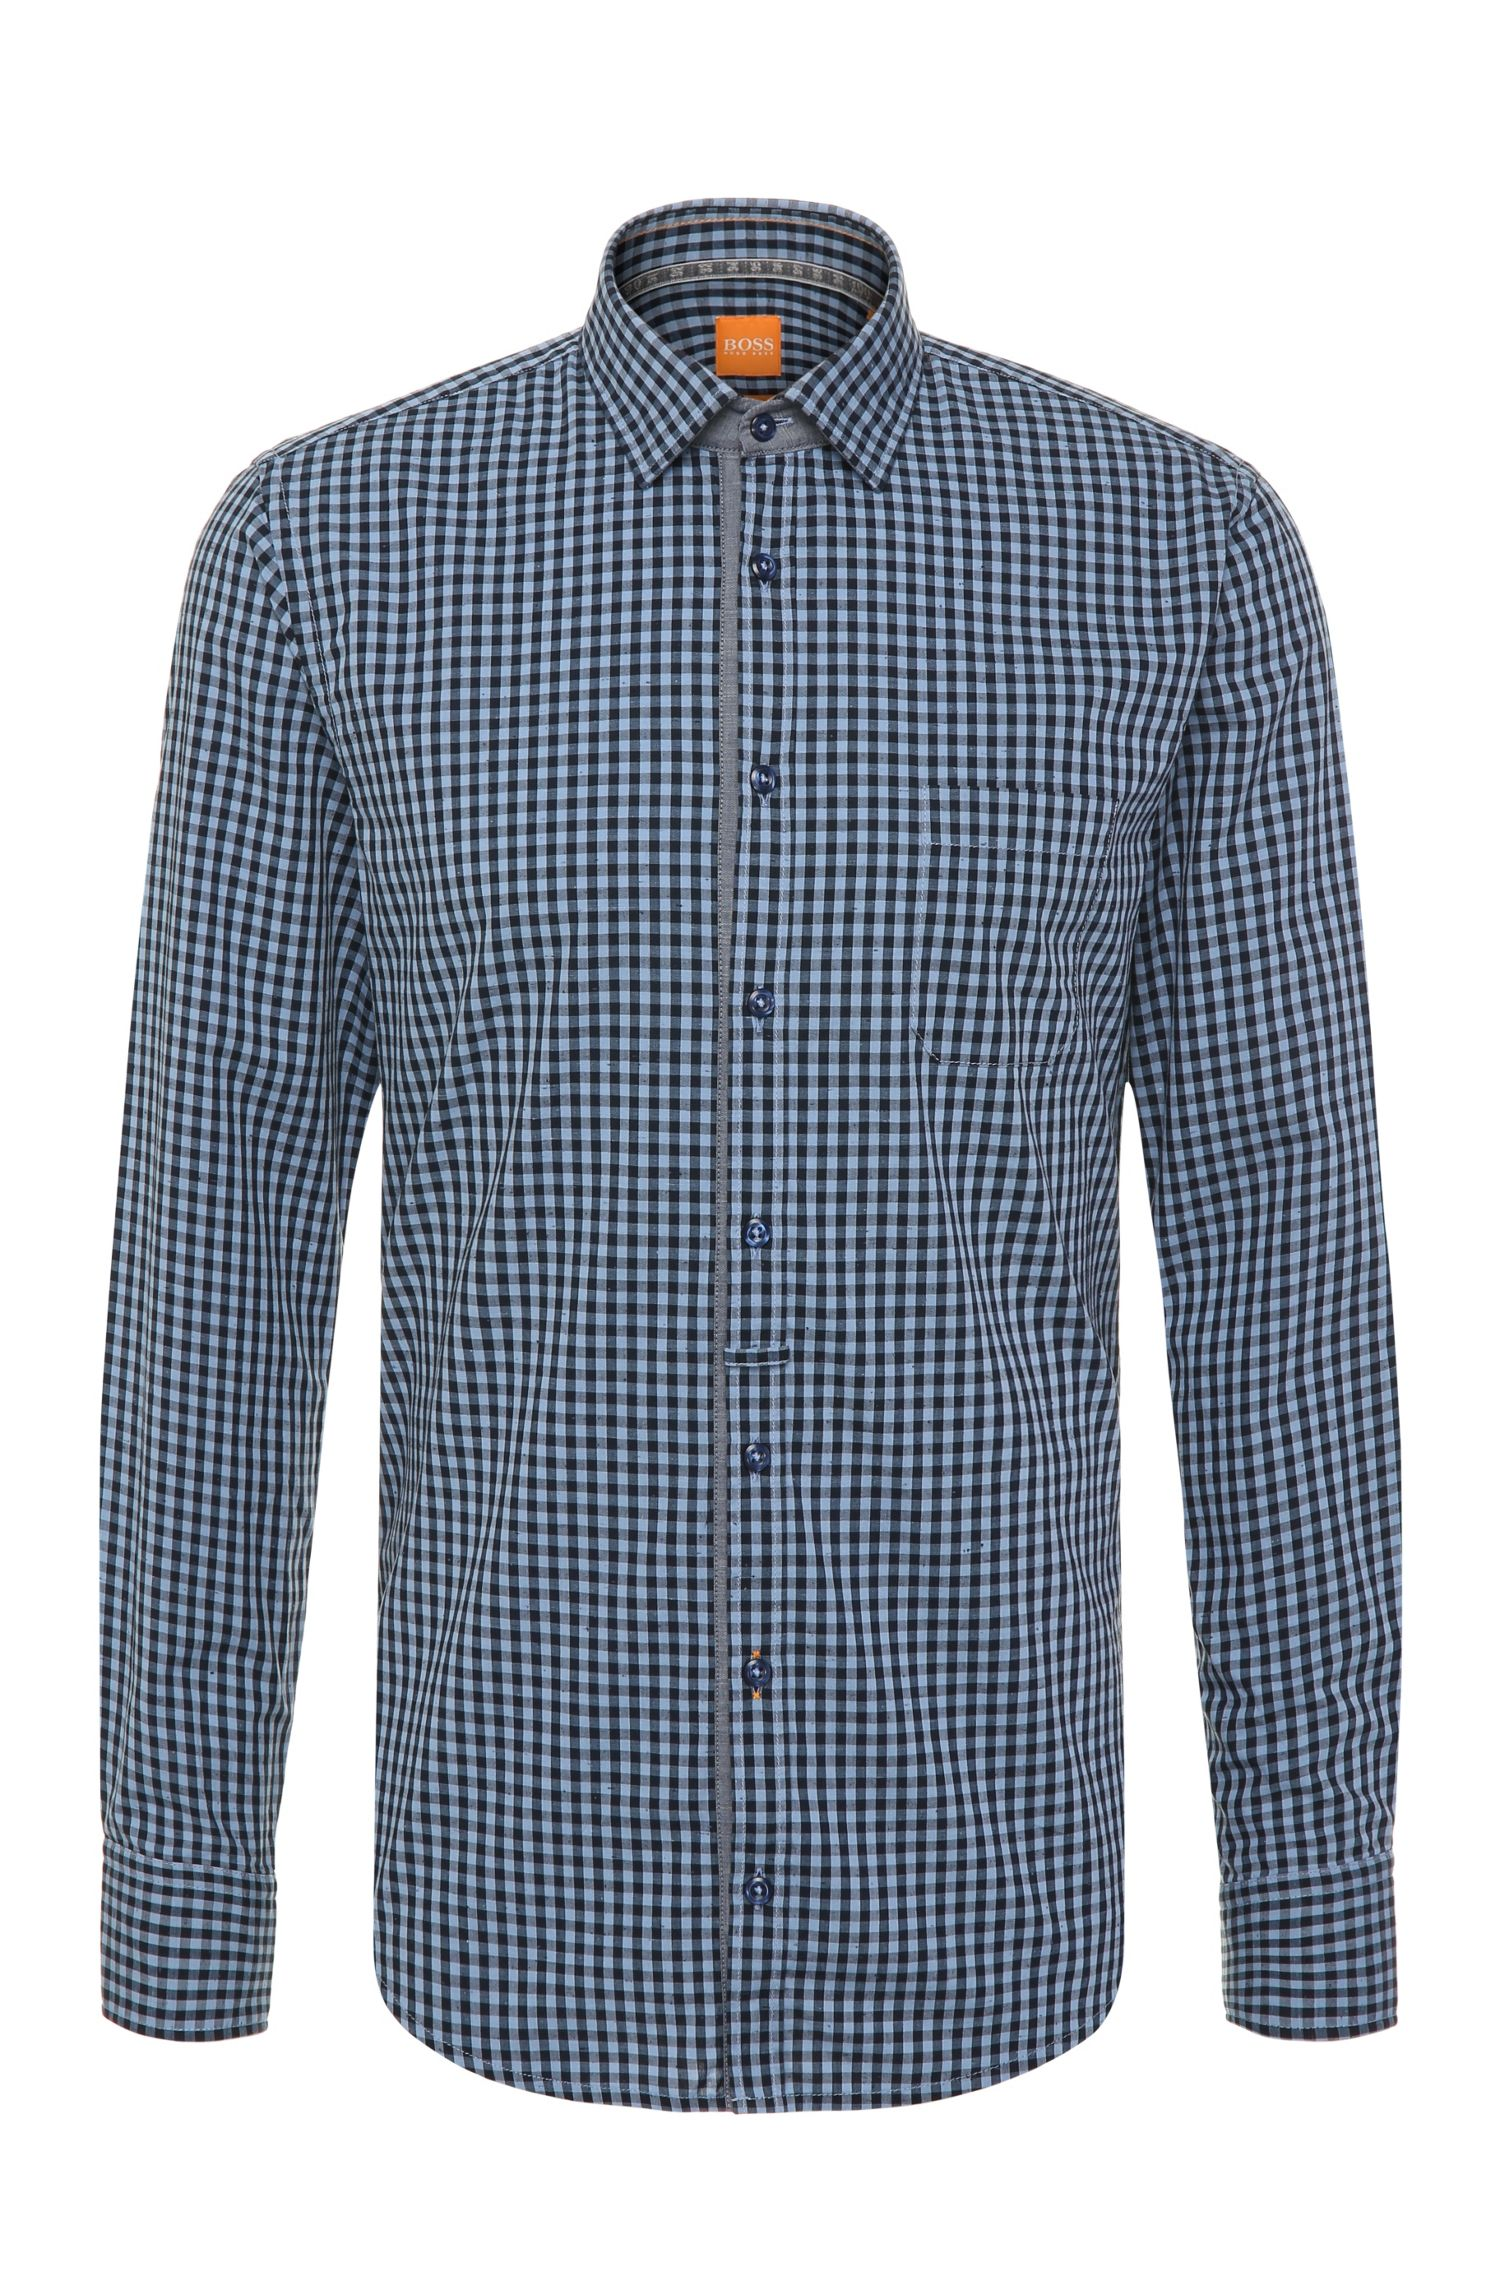 'EslimE'   Extra Slim Fit, Printed Cotton Button Down Shirt